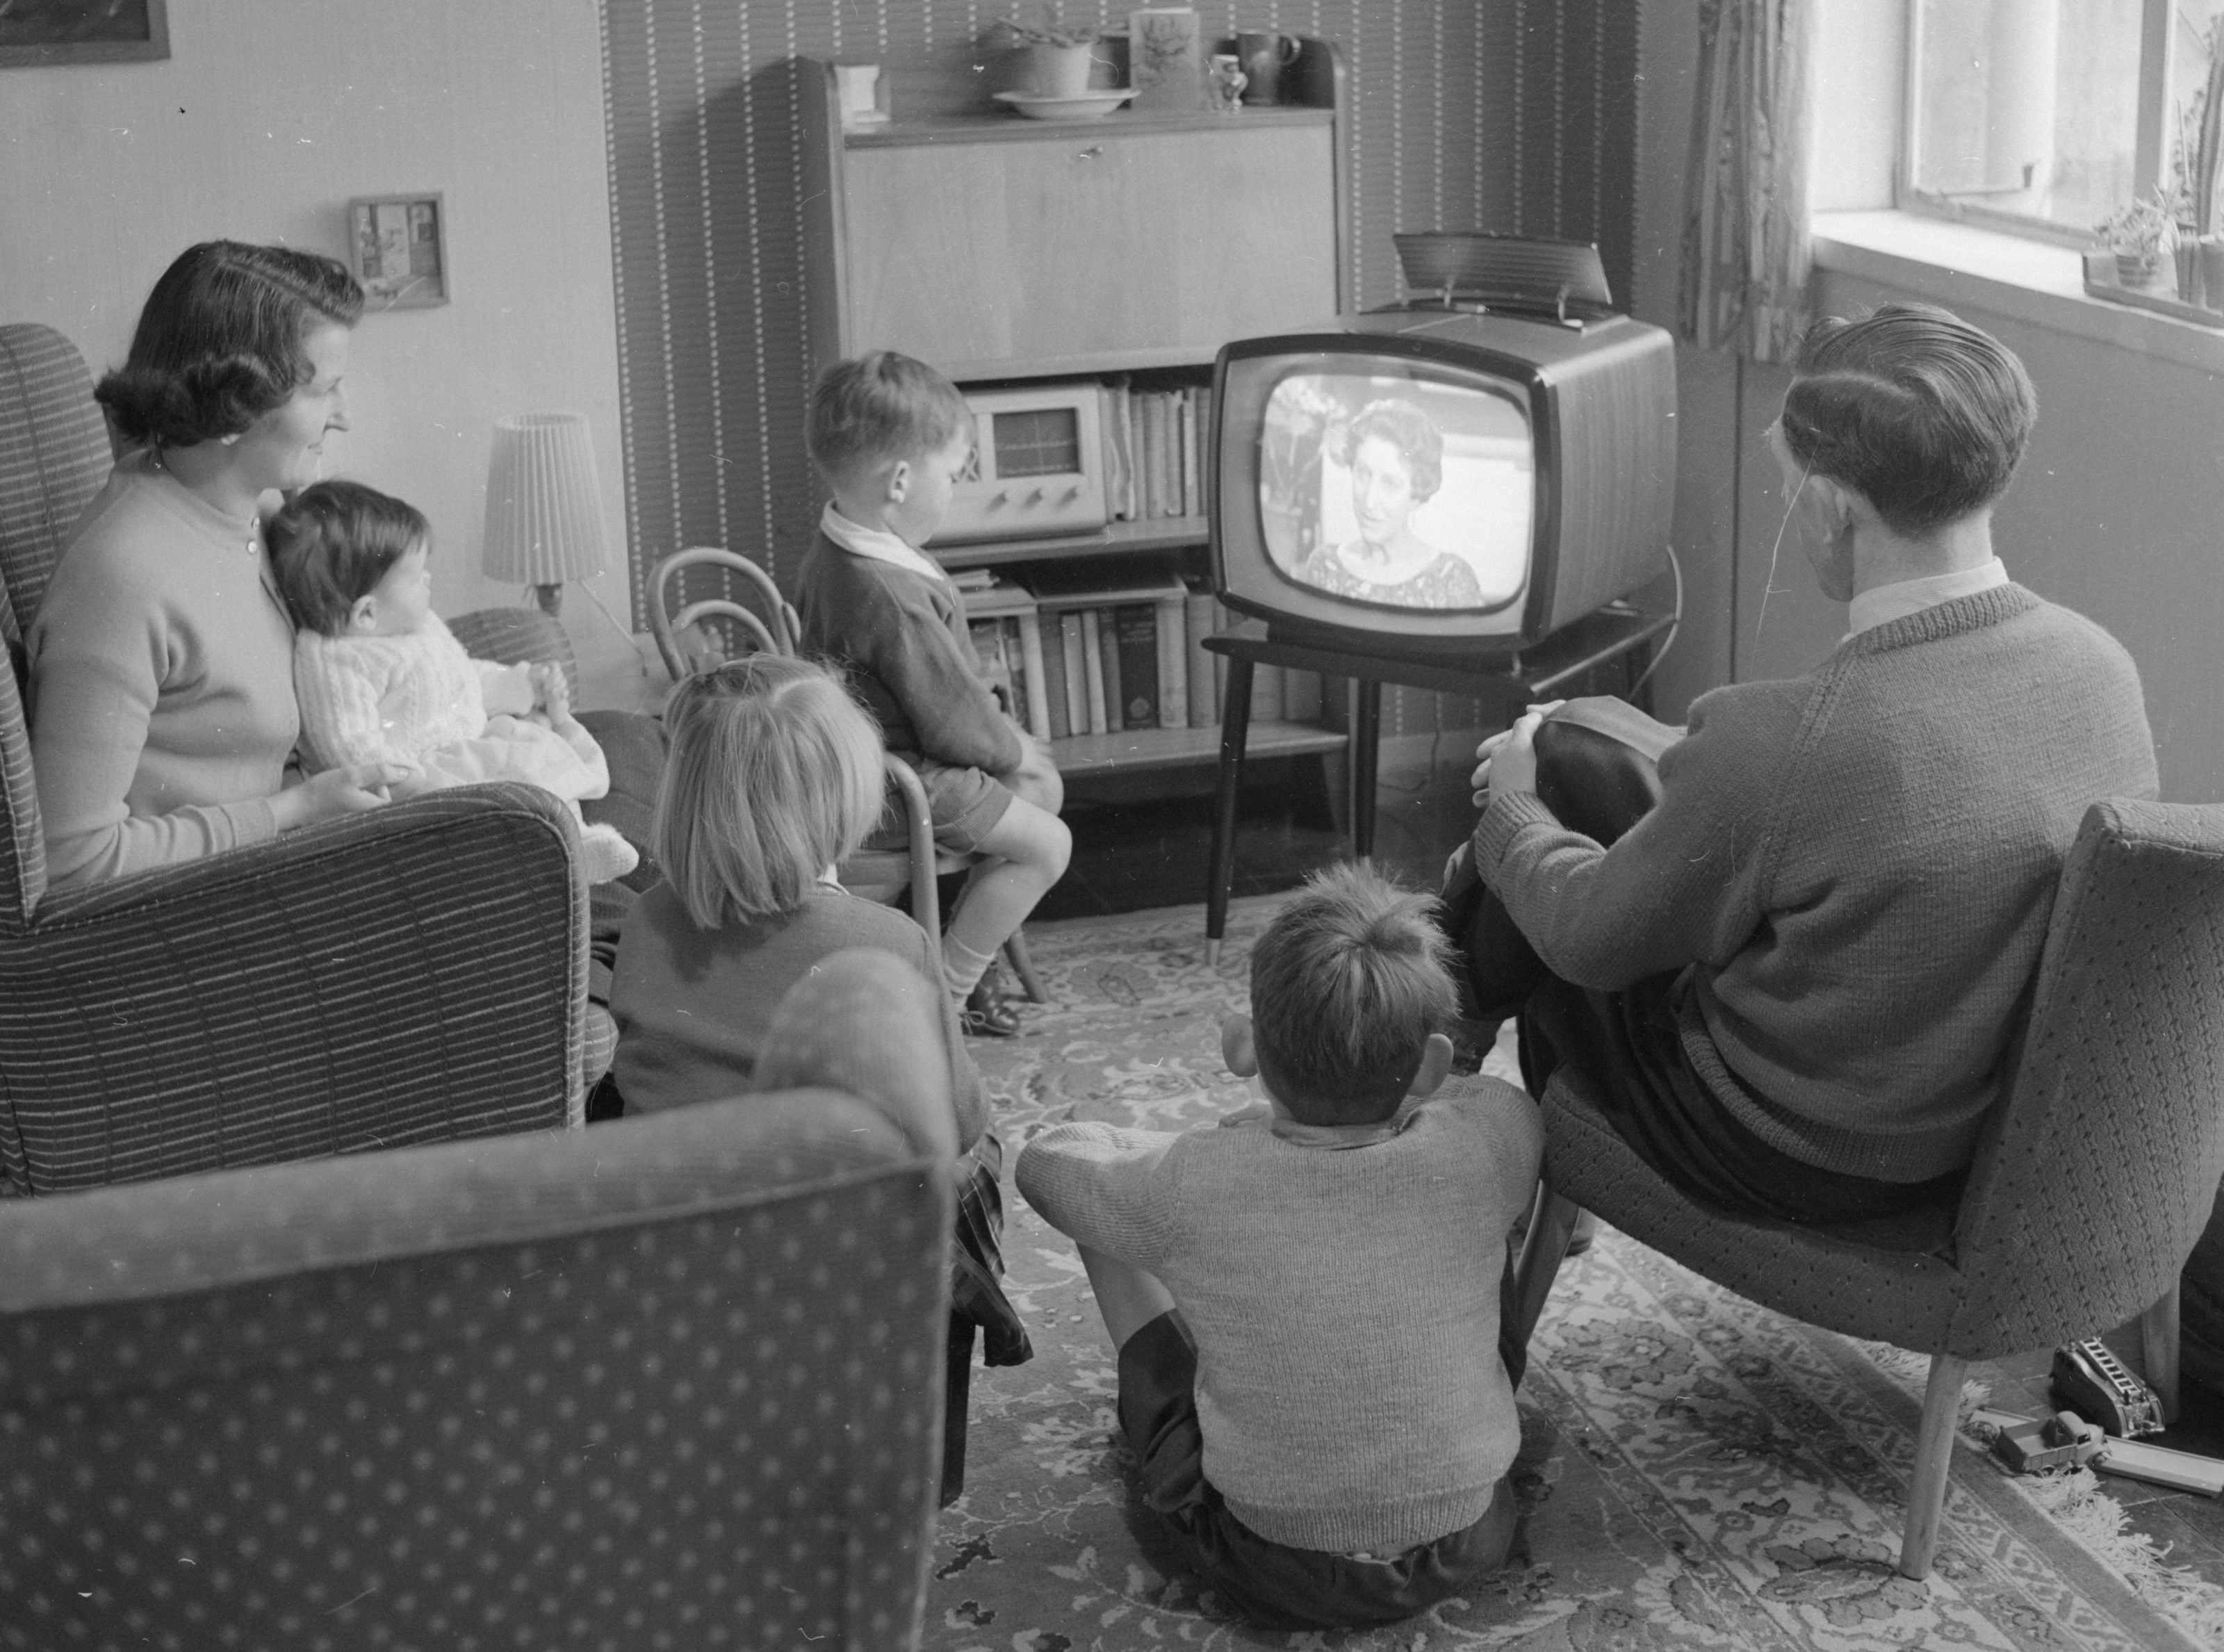 Baby boomers in the 1950s watching TV